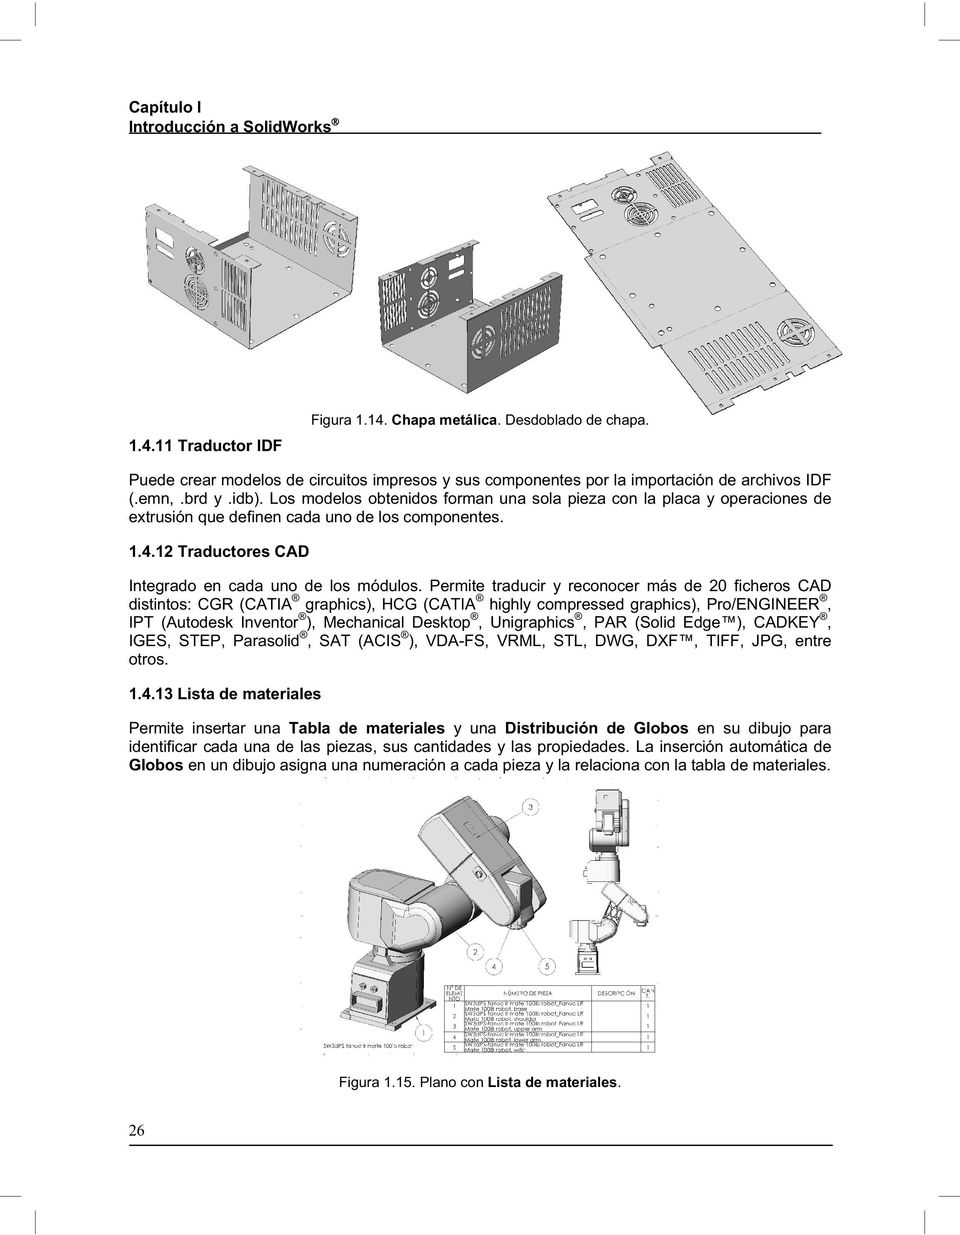 Permite traducir y reconocer más de 20 ficheros CAD distintos: CGR (CATIA graphics), HCG (CATIA highly compressed graphics), Pro/ENGINEER, IPT (Autodesk Inventor ), Mechanical Desktop, Unigraphics,